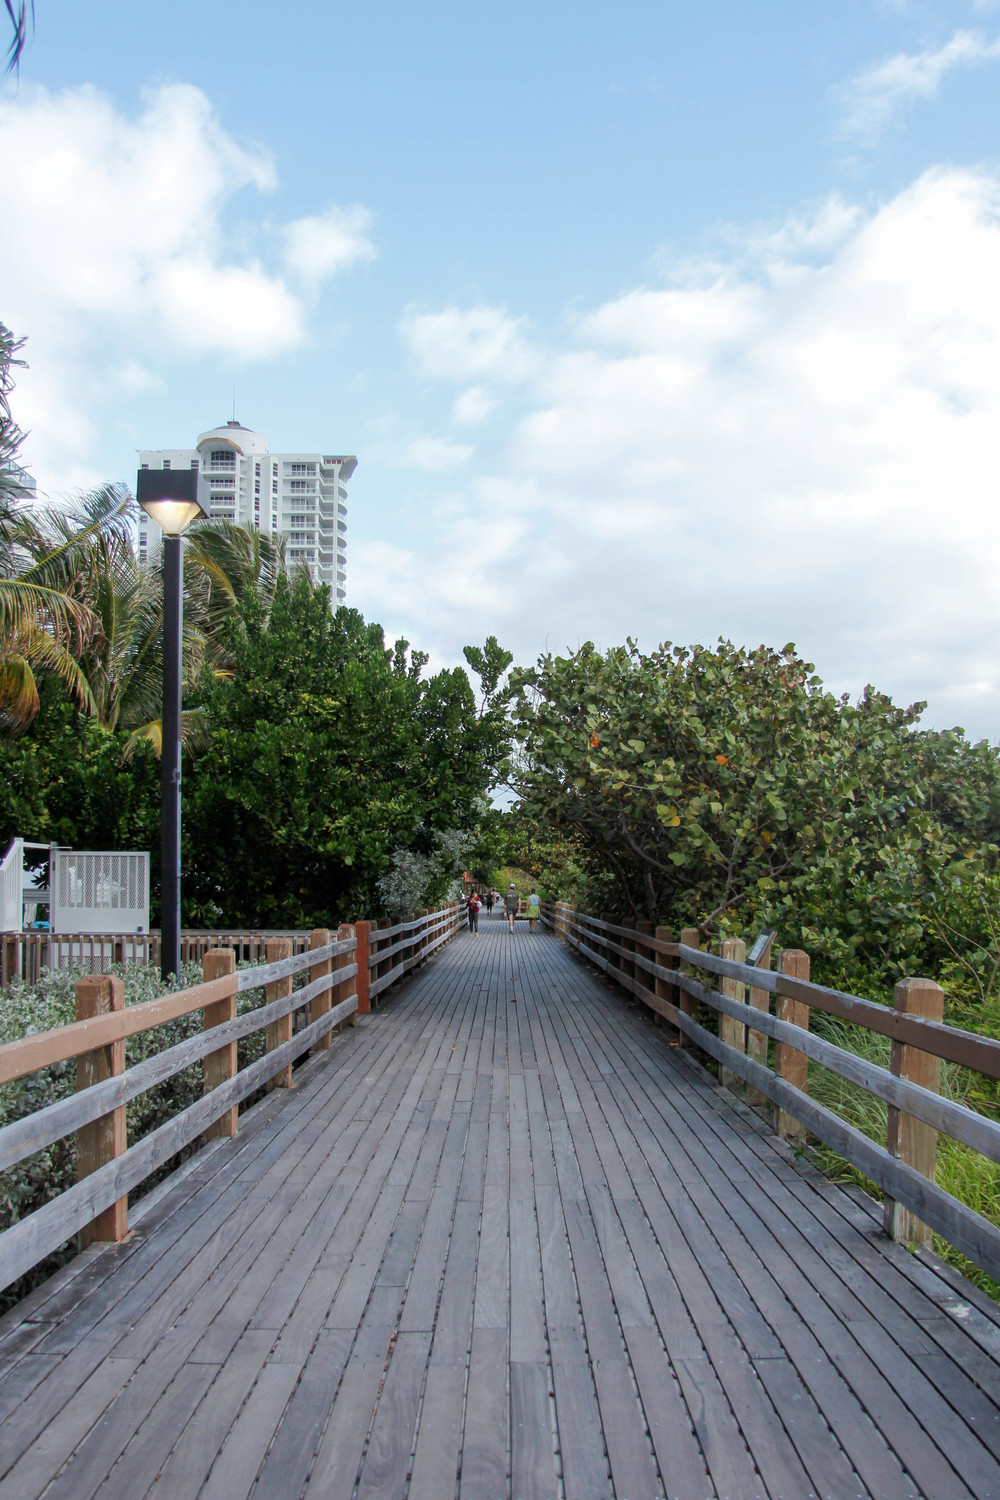 South Beach, Miami Boardwalk | 7 Ways to Stay Healthy While Traveling | Jennifer Diaz